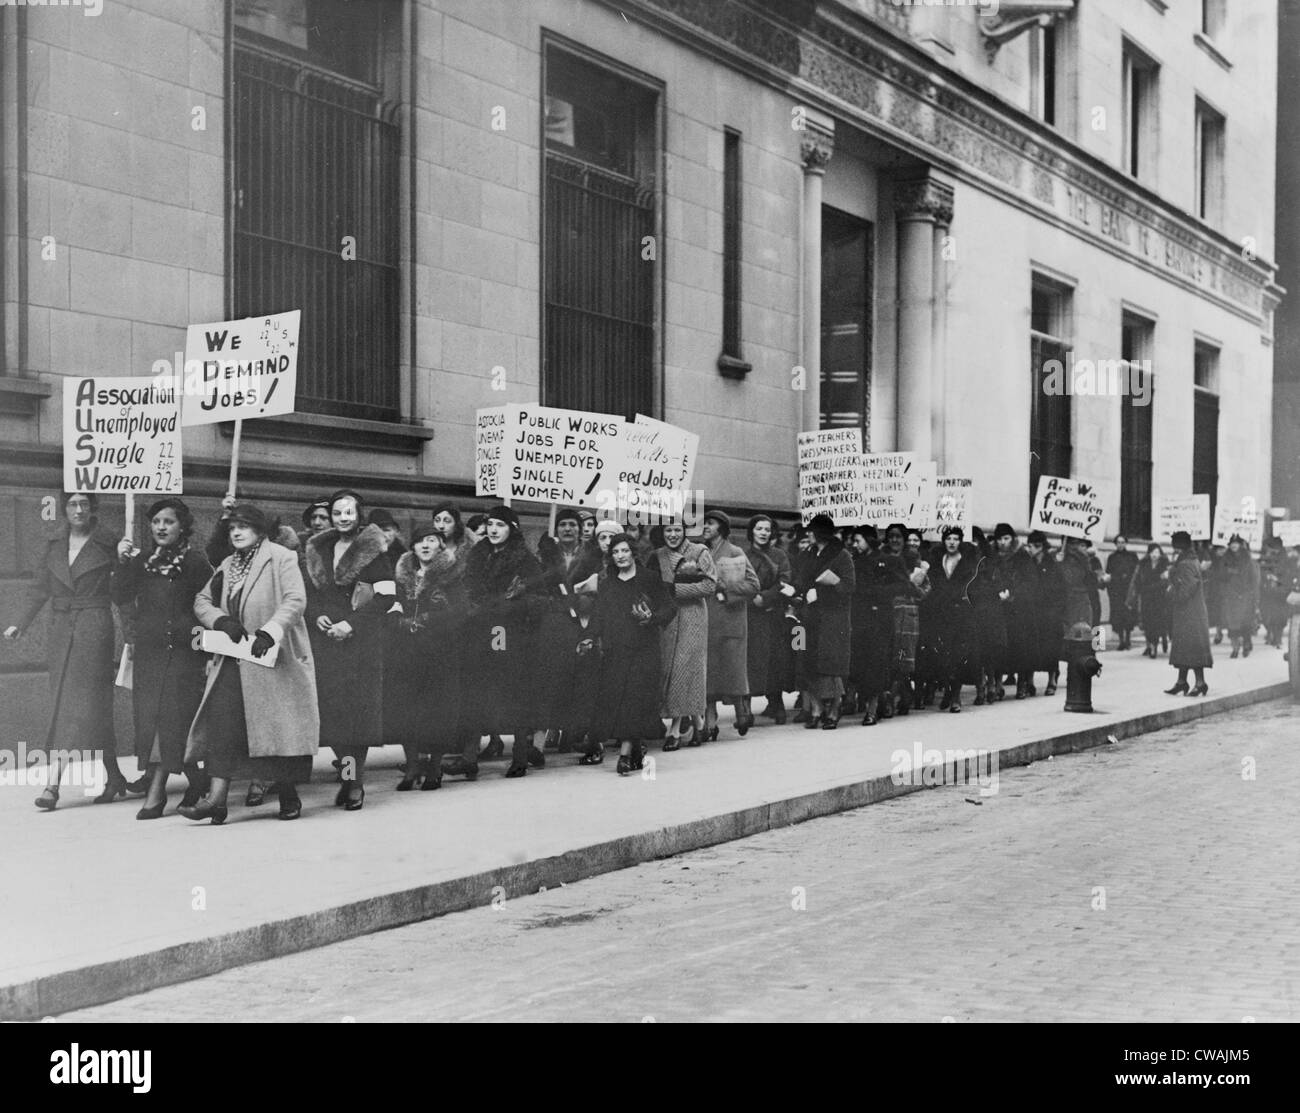 Unemployed single women in New York demonstrate for public works jobs.  Some placards read 'Forgotten women,' - Stock Image